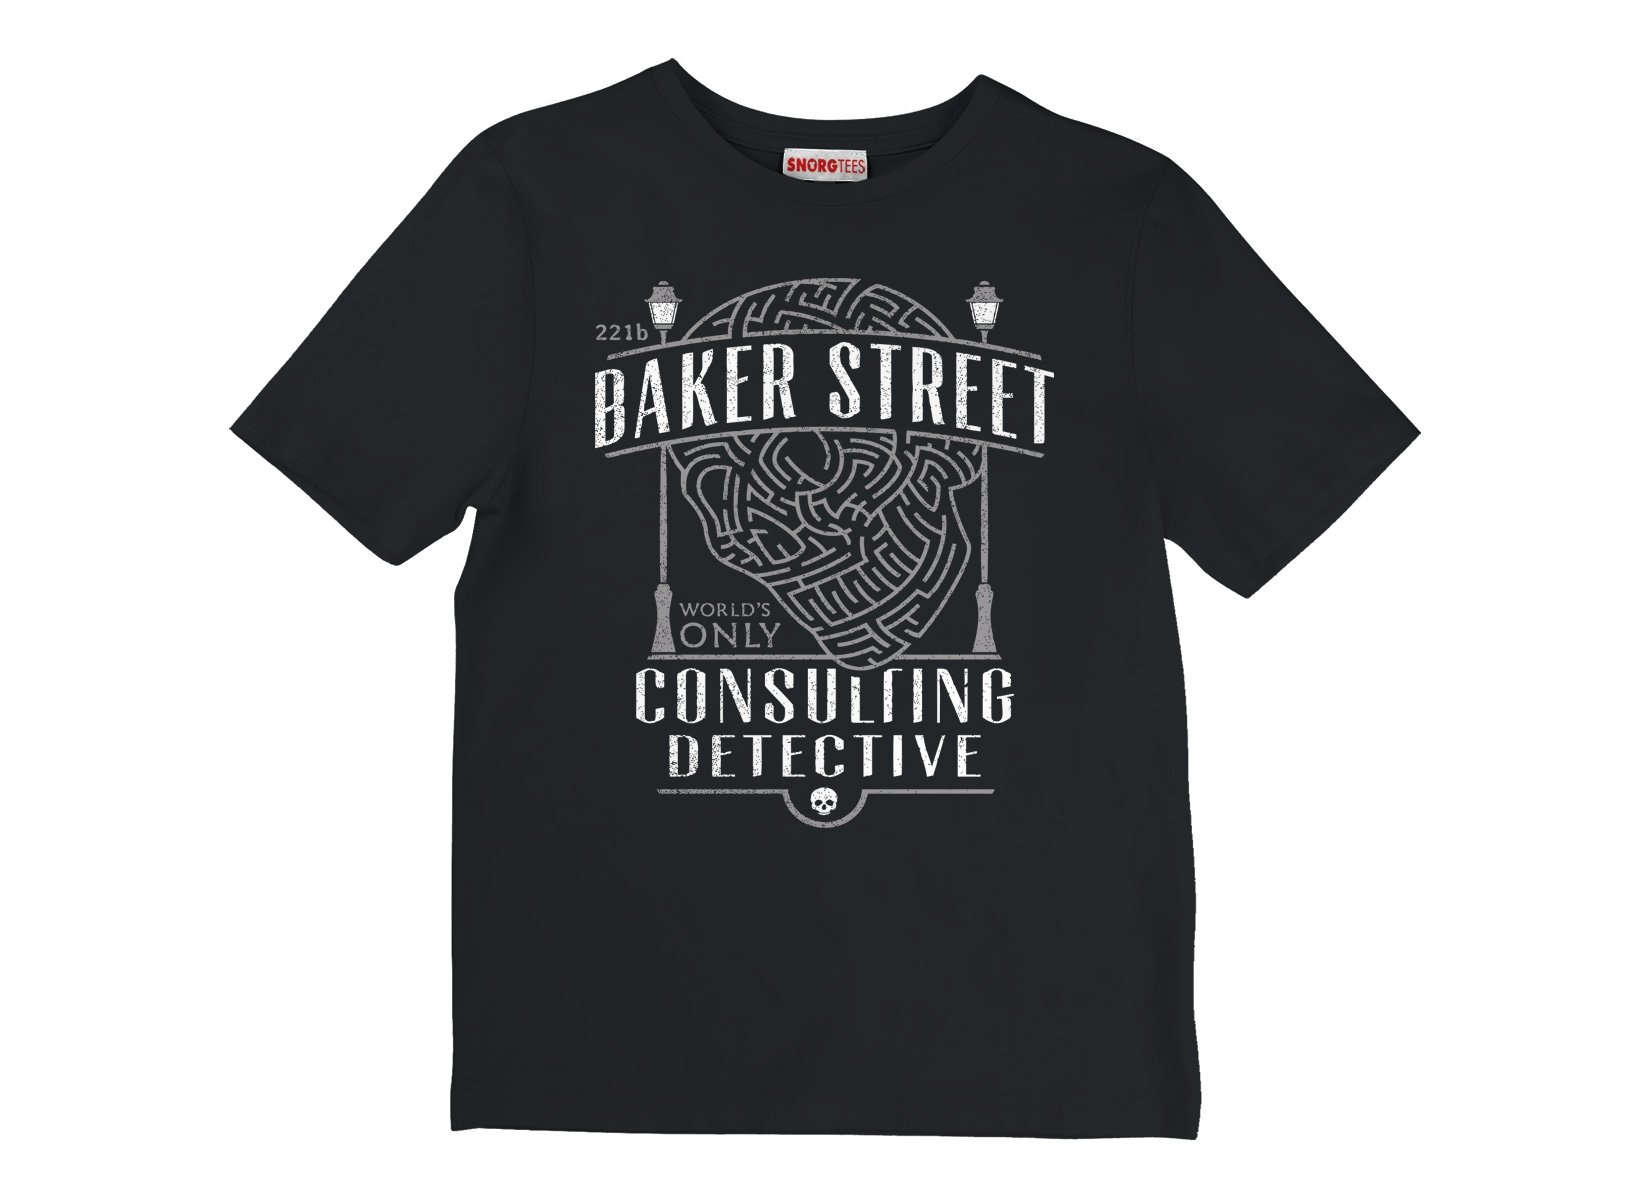 Baker Street Consulting Detective on Kids T-Shirt